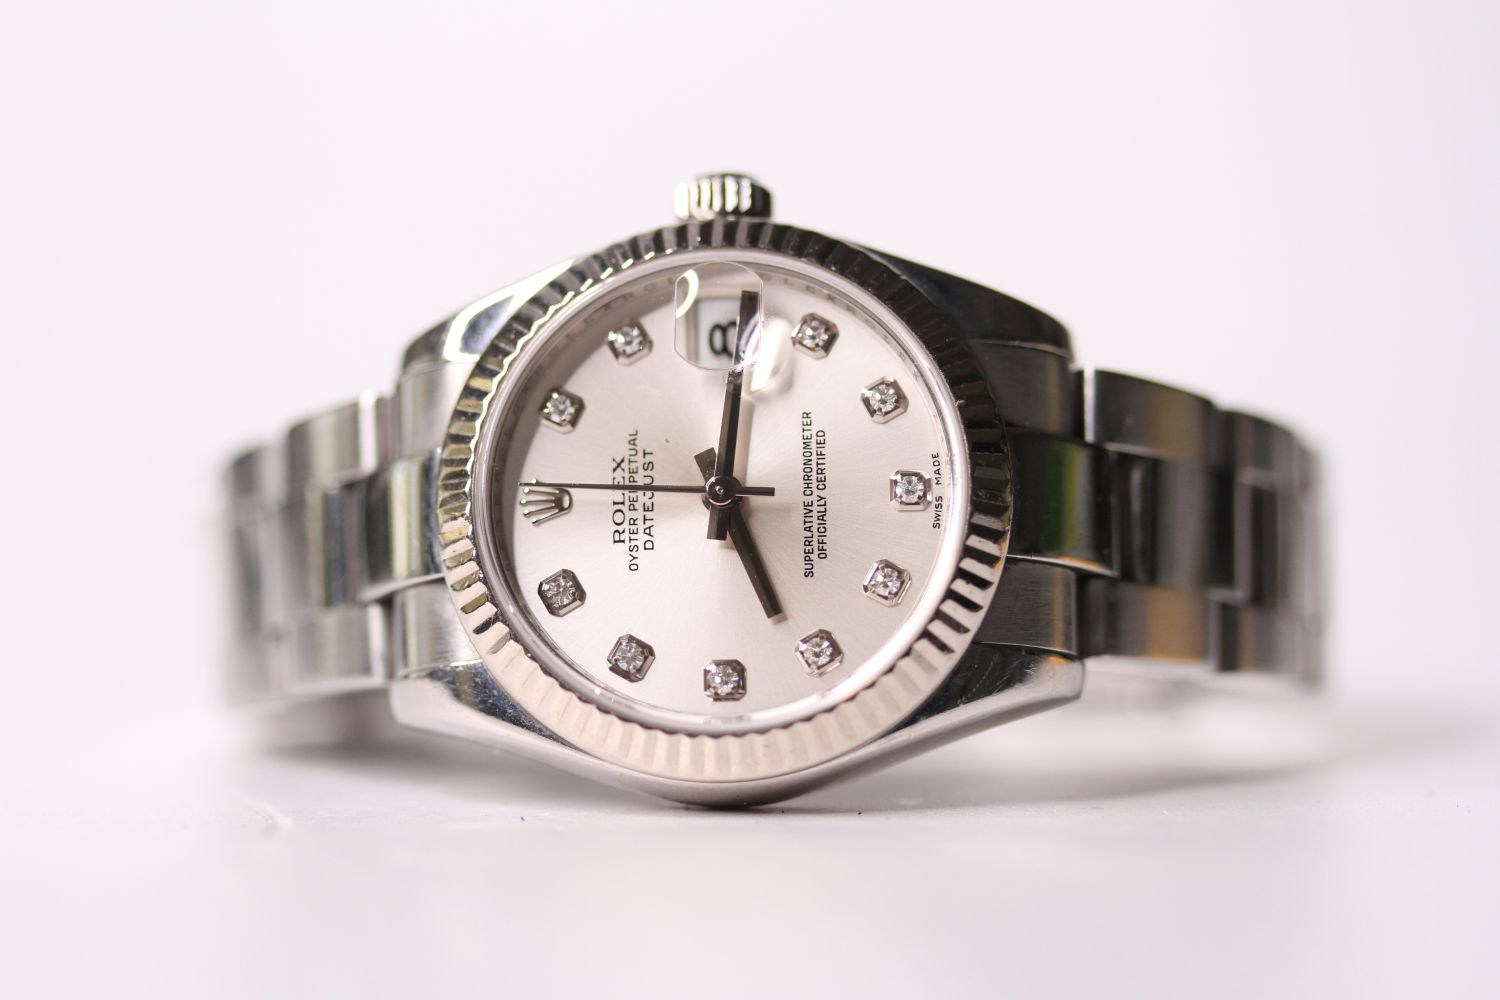 ROLEX DIAMOND DIAL DATEJUST WRISTWATCH REF 178274 W/PAPERS, circular silver dial with diamond hour